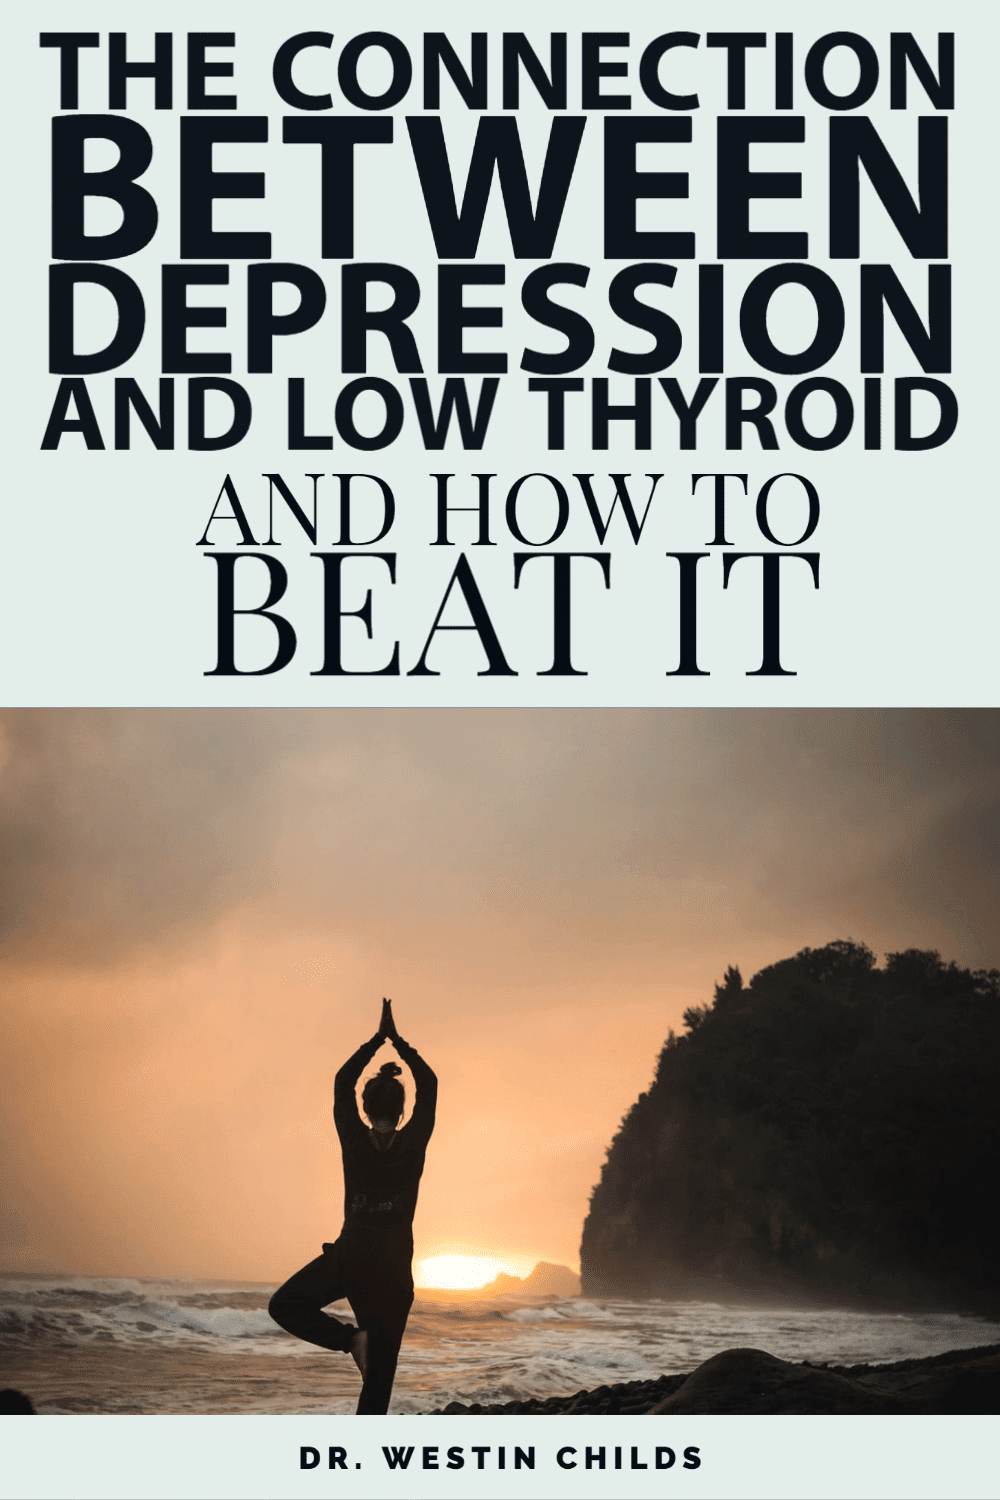 the connection between depression and low thyroid and how to beat it